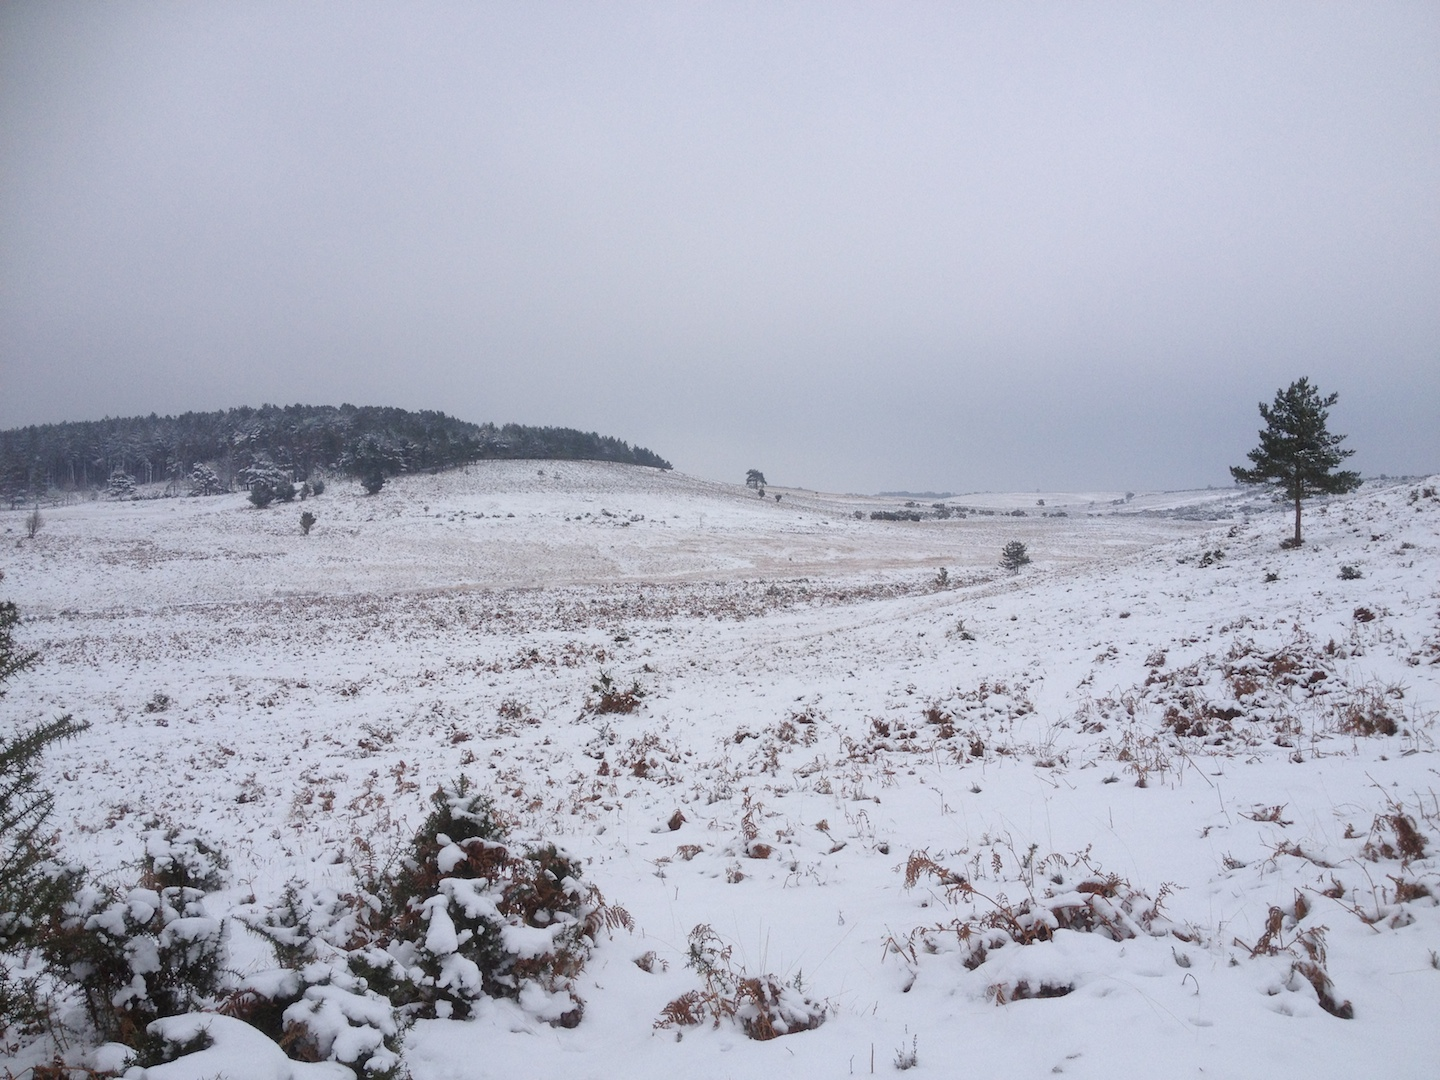 In the winter the New Forest can seem an inhospitable landscape.